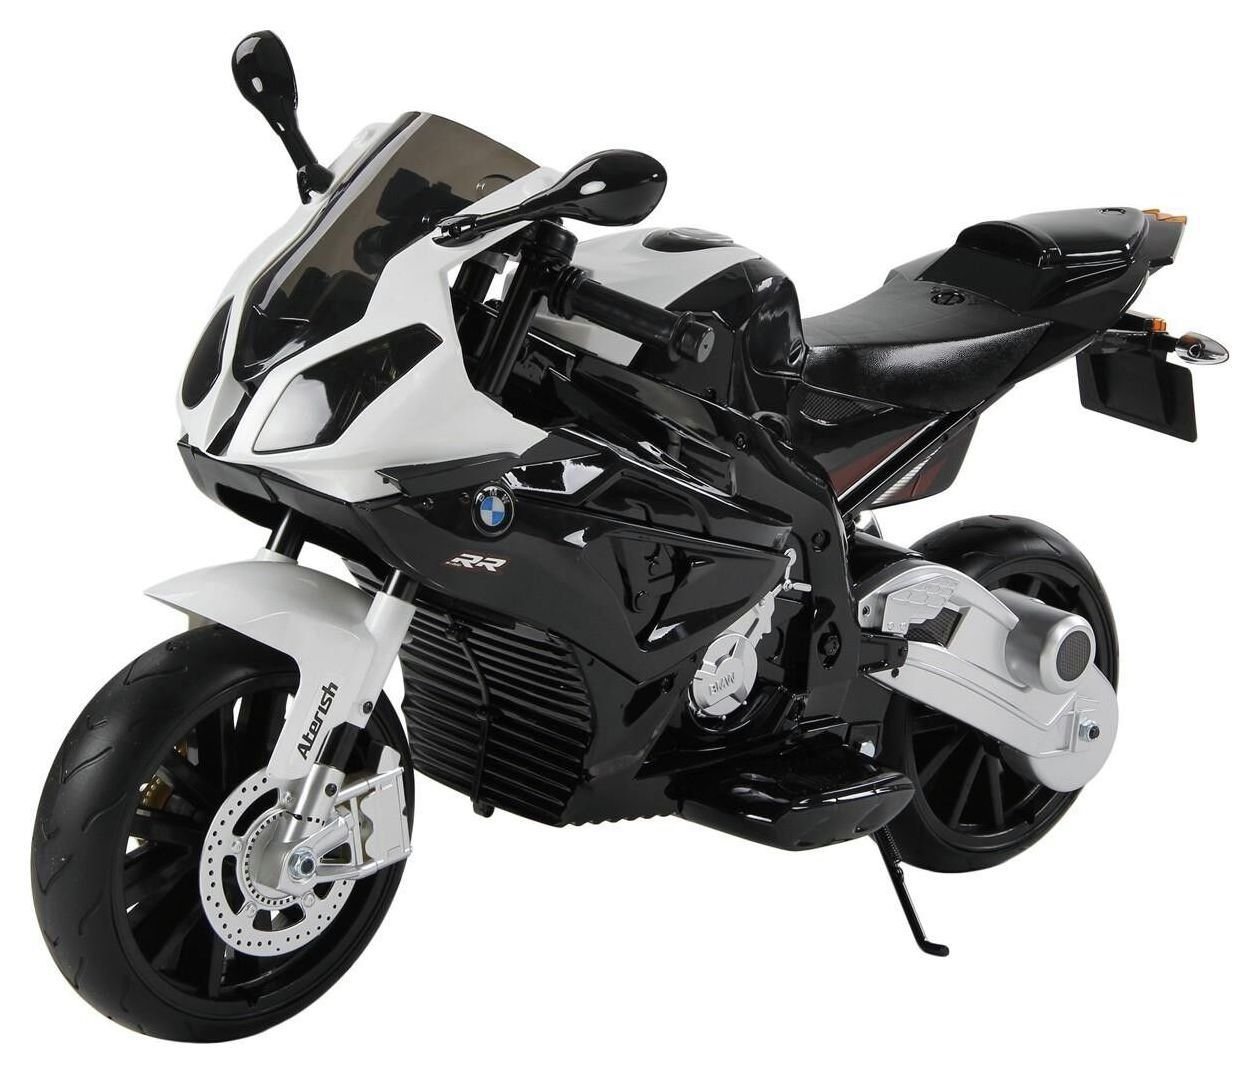 Image of BMW Motorcycle Ride On - Black.